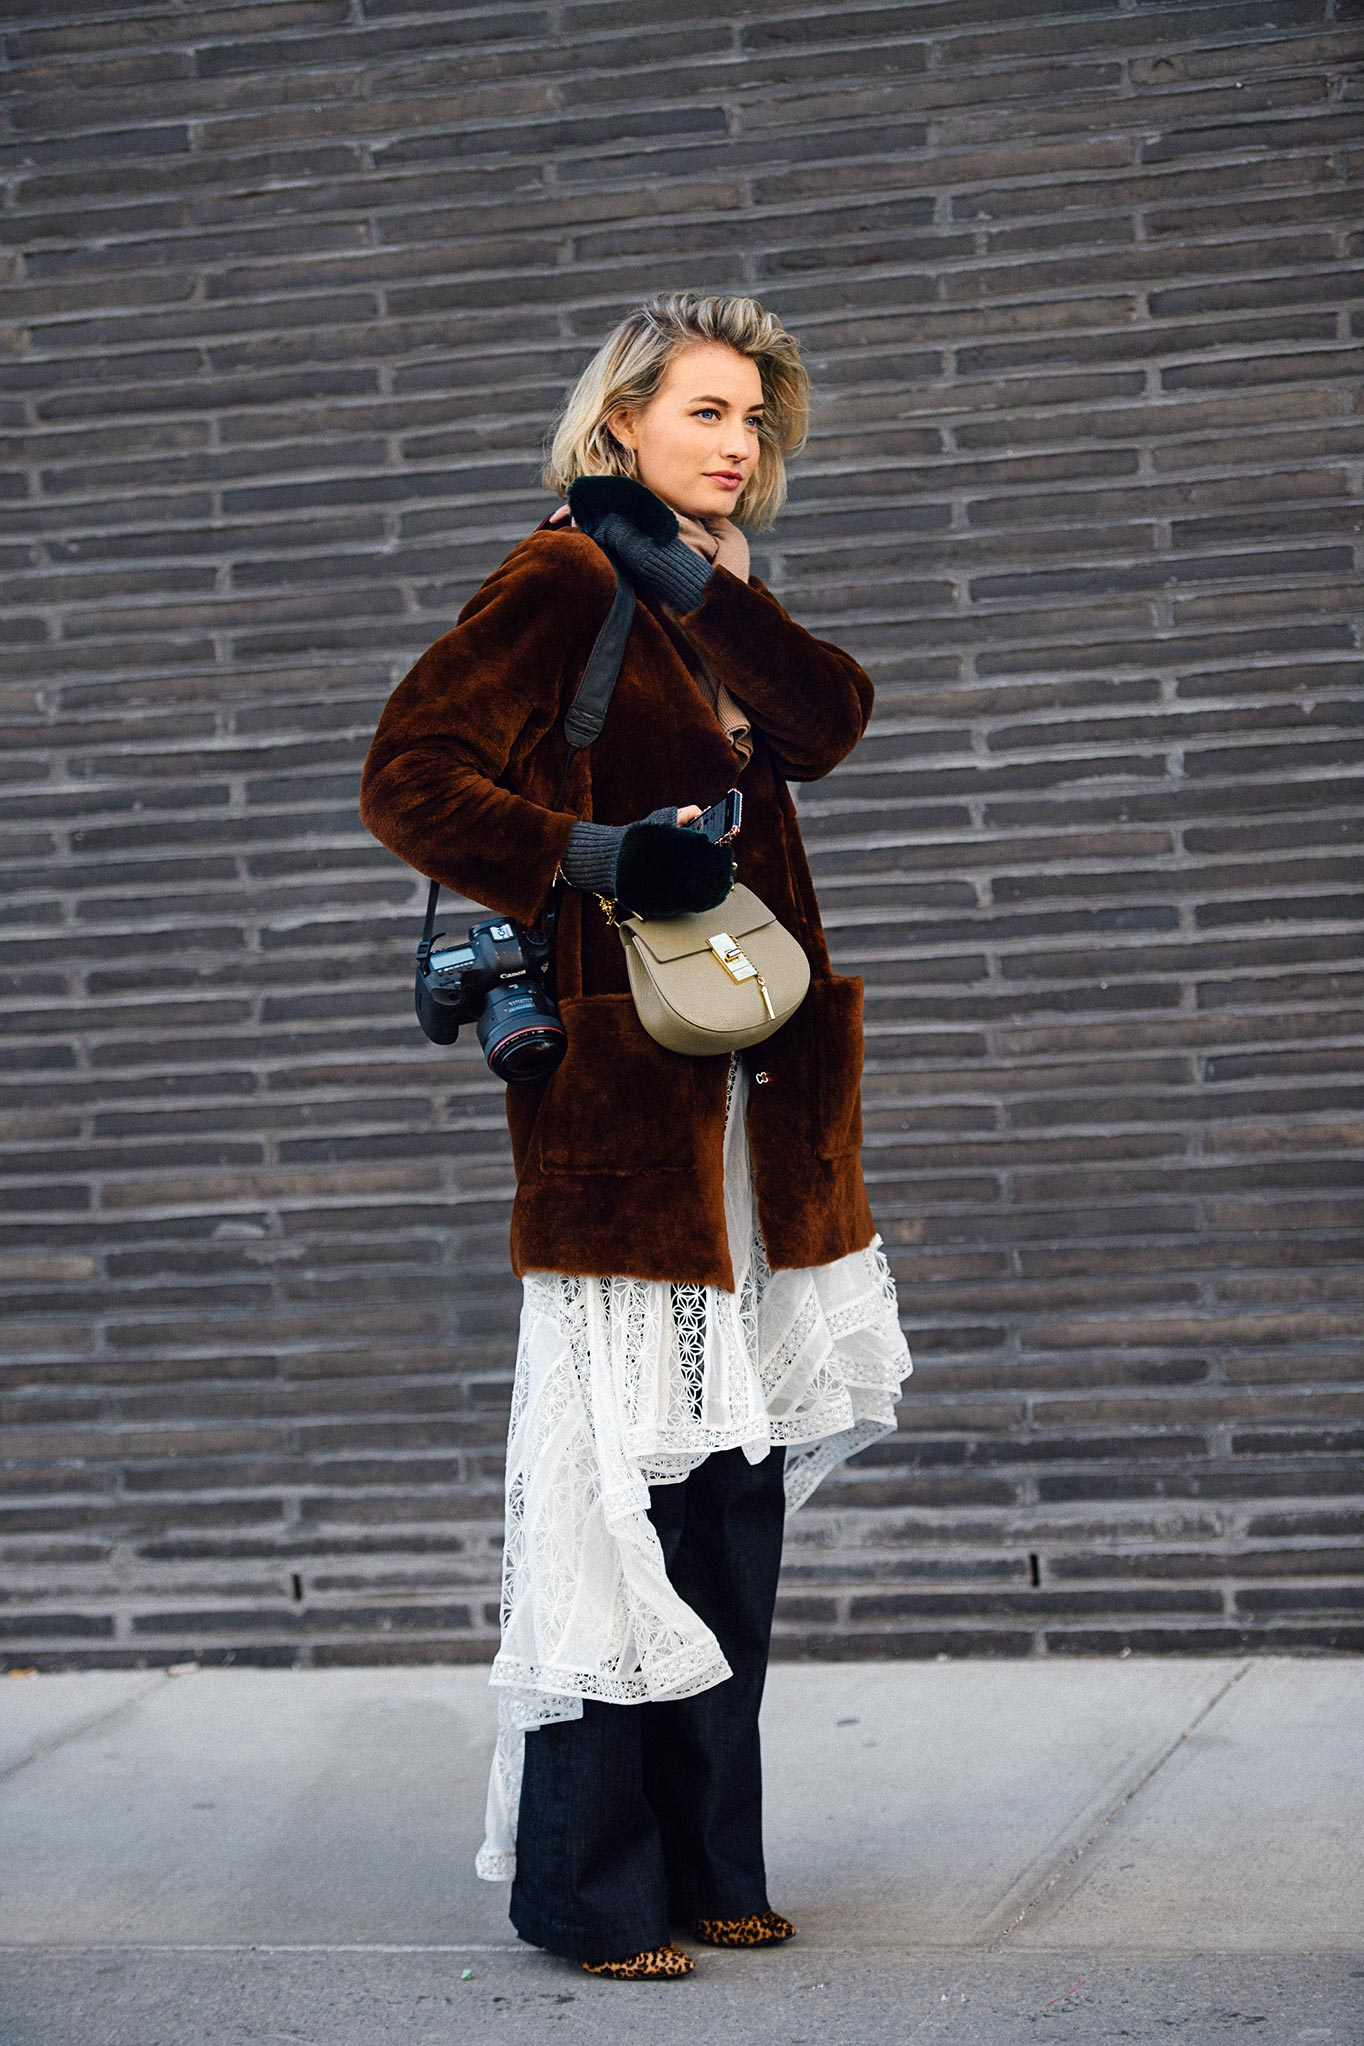 Zanita Whittington at New York Fashion Week Fall/Winter 2015